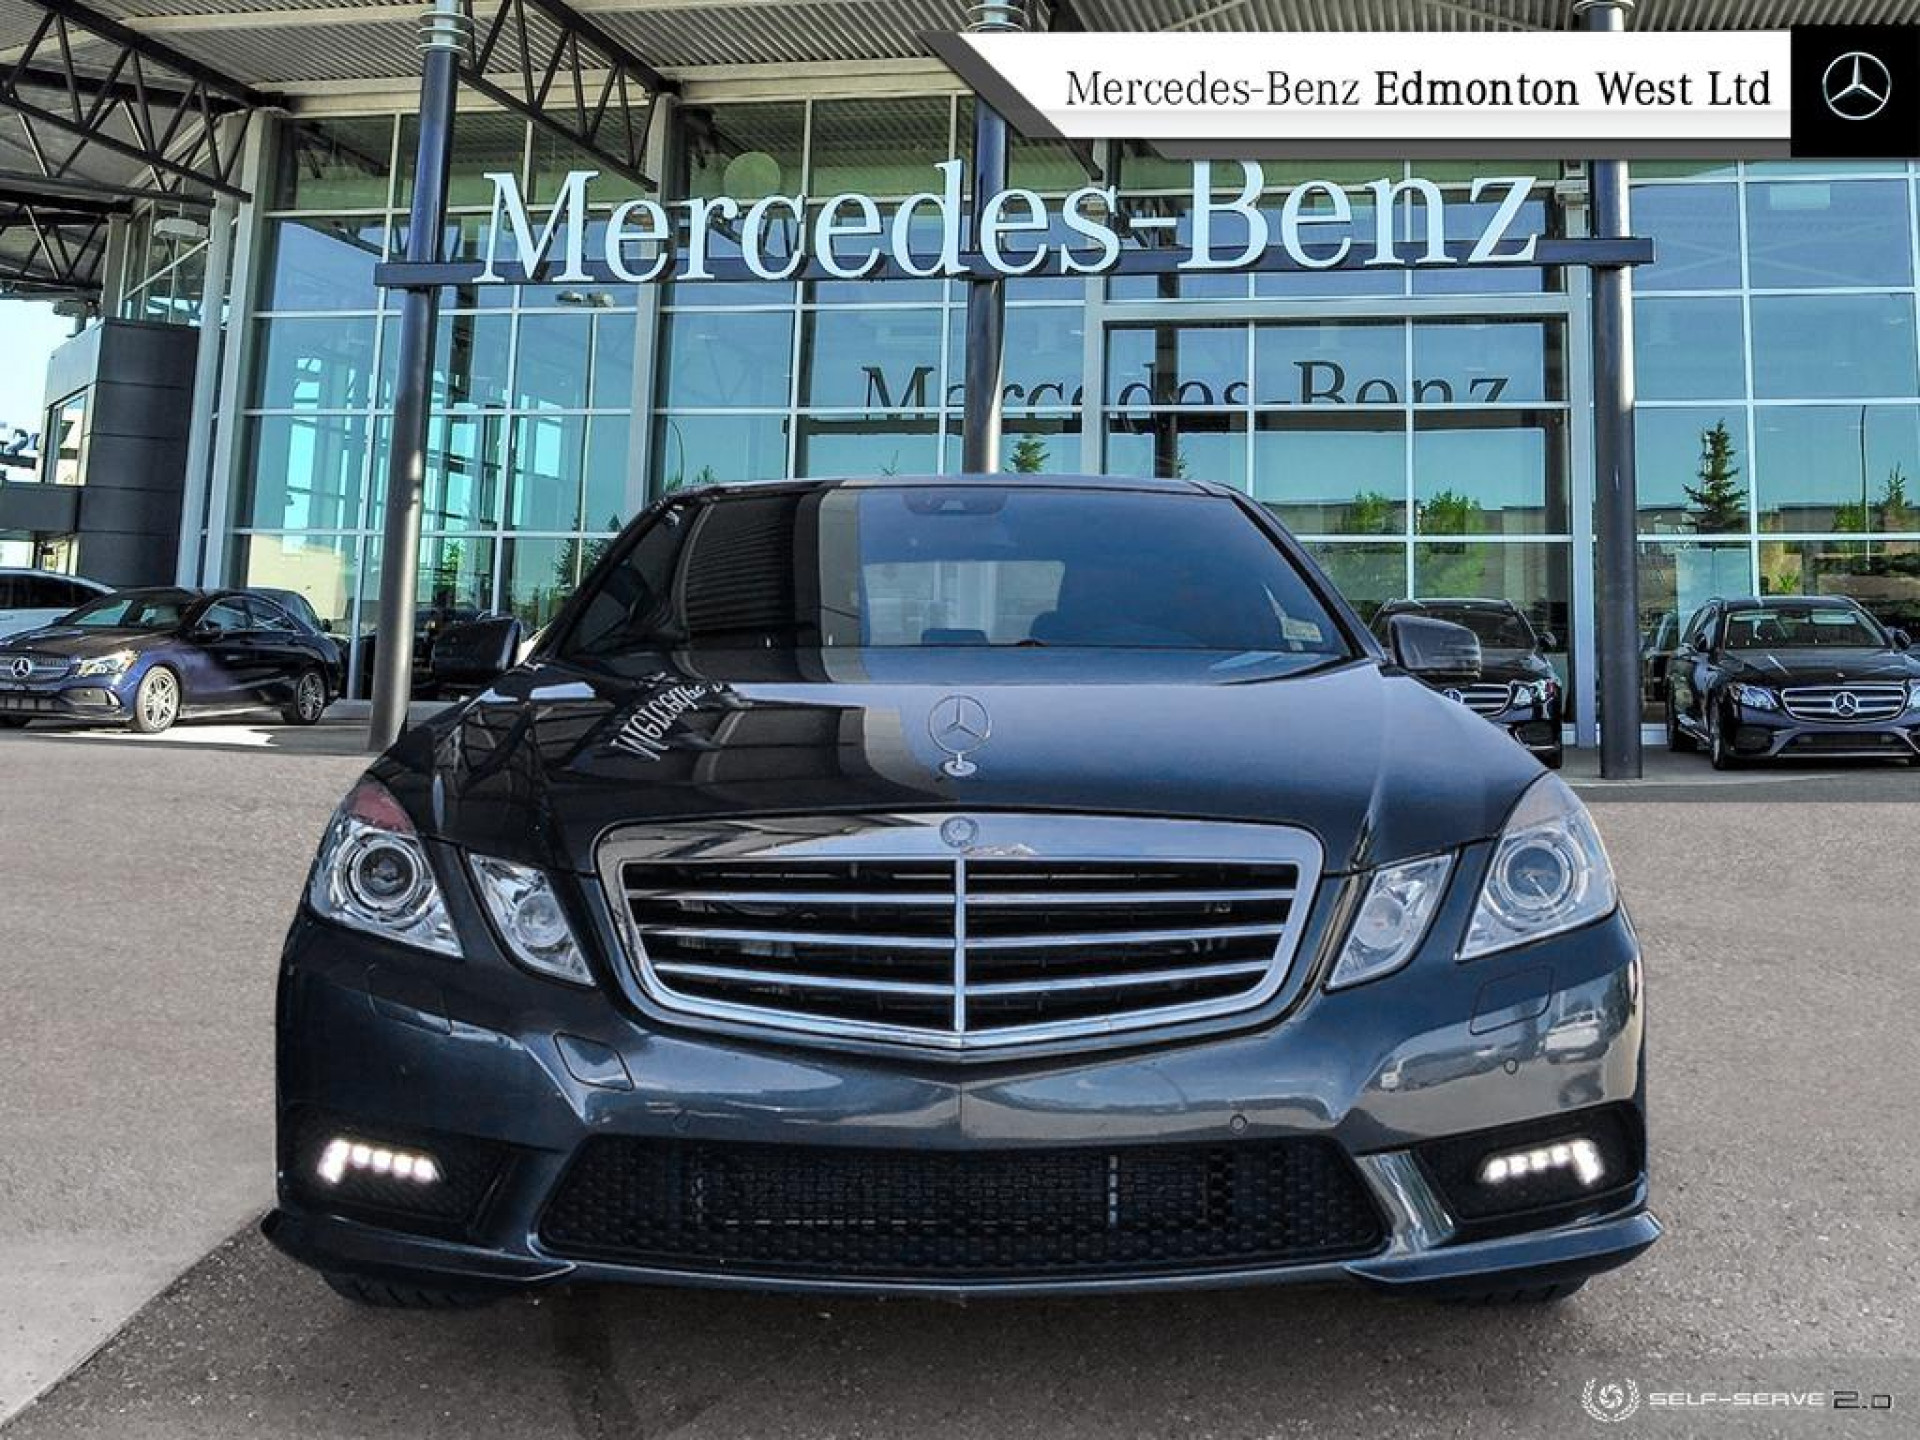 Pre-Owned 2010 Mercedes Benz E-Class 550 4MATIC Sedan Very Low Kilometres, Great Condition, Local Vehicle